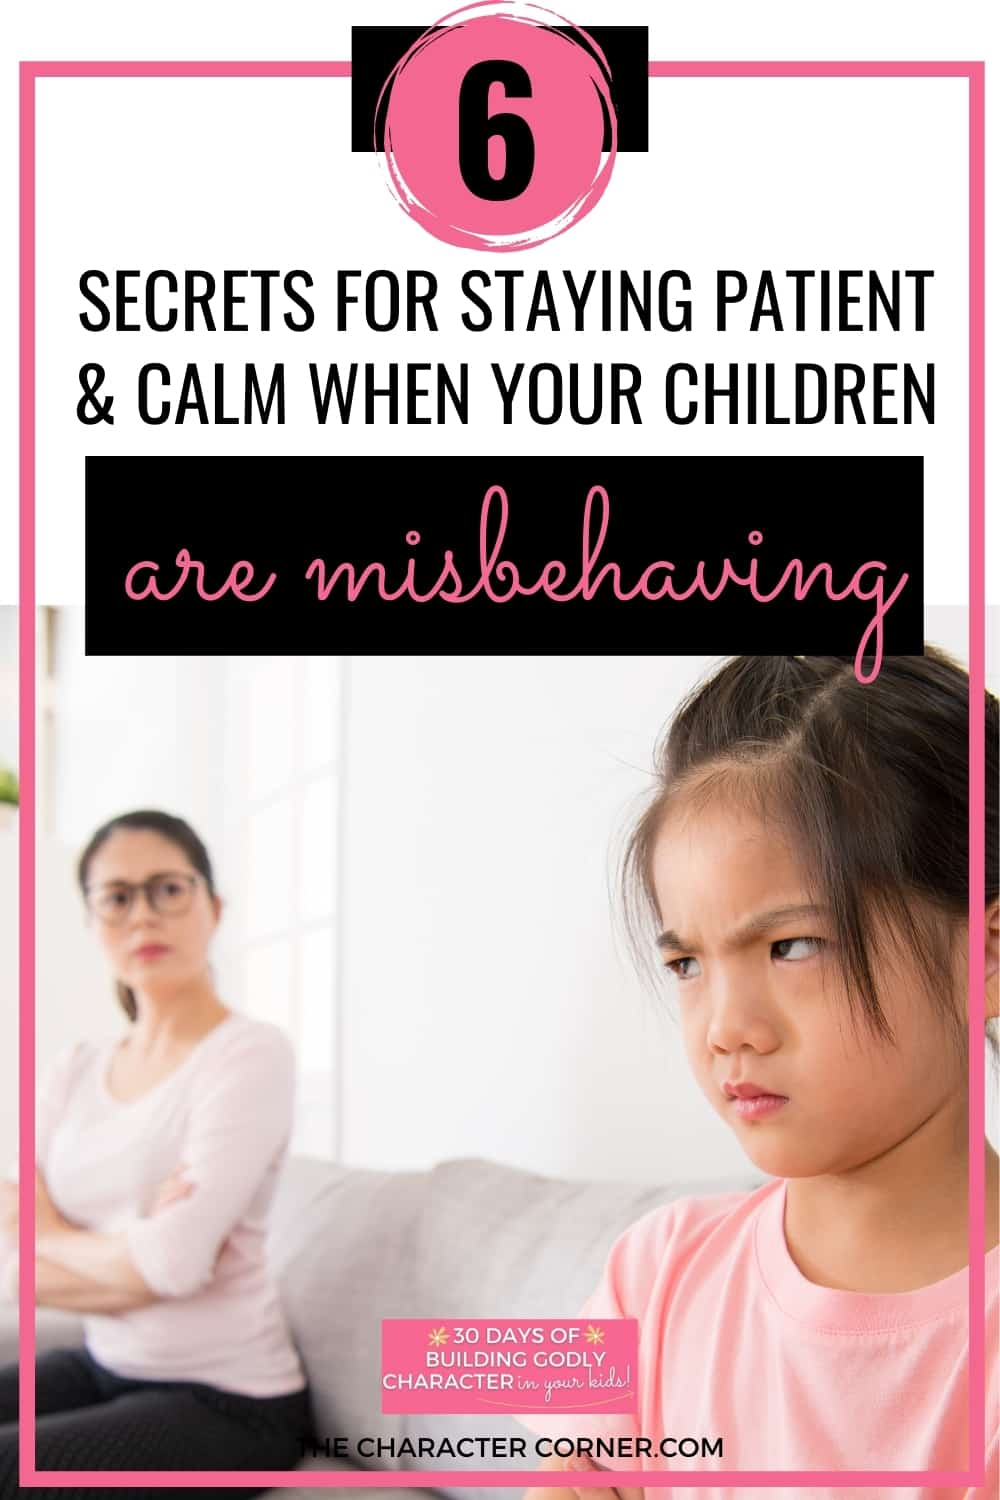 Mom with difficult child. Text on Image reads: 6 Secrets For Staying Patient & Calm When Your Children Are Misbehaving